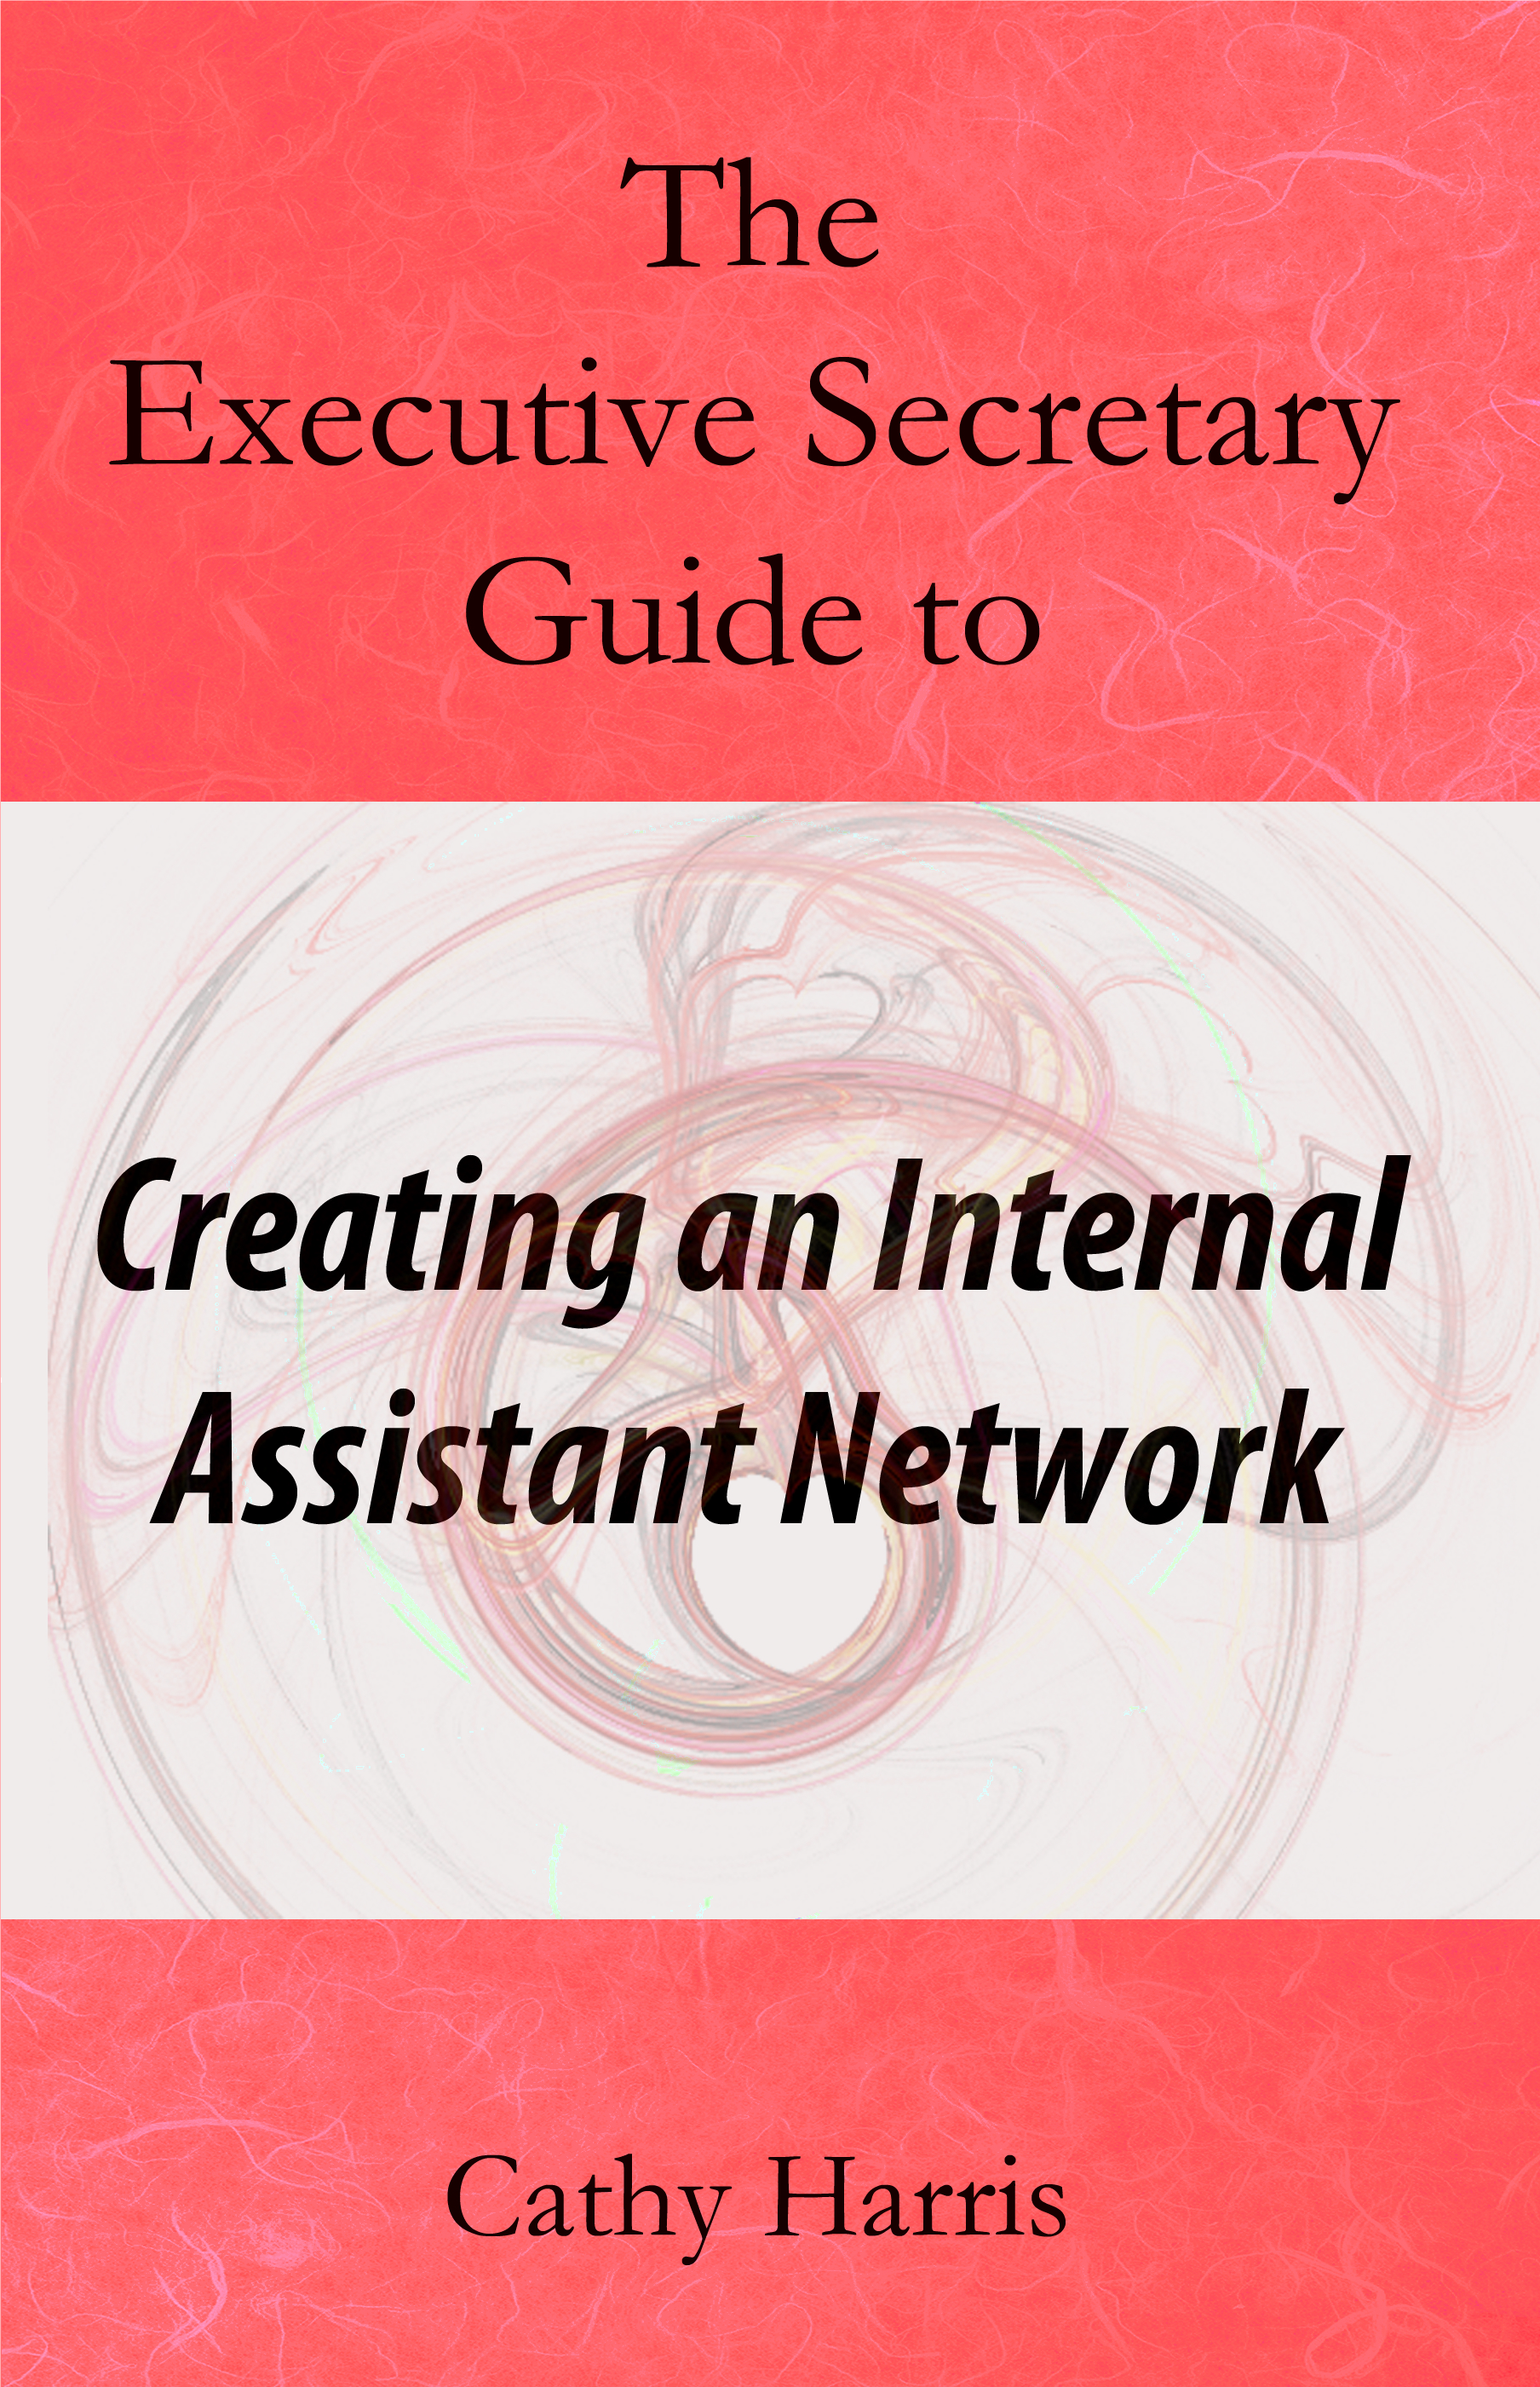 Executive Secretary Guide to: Creating an Internal Assistant Network